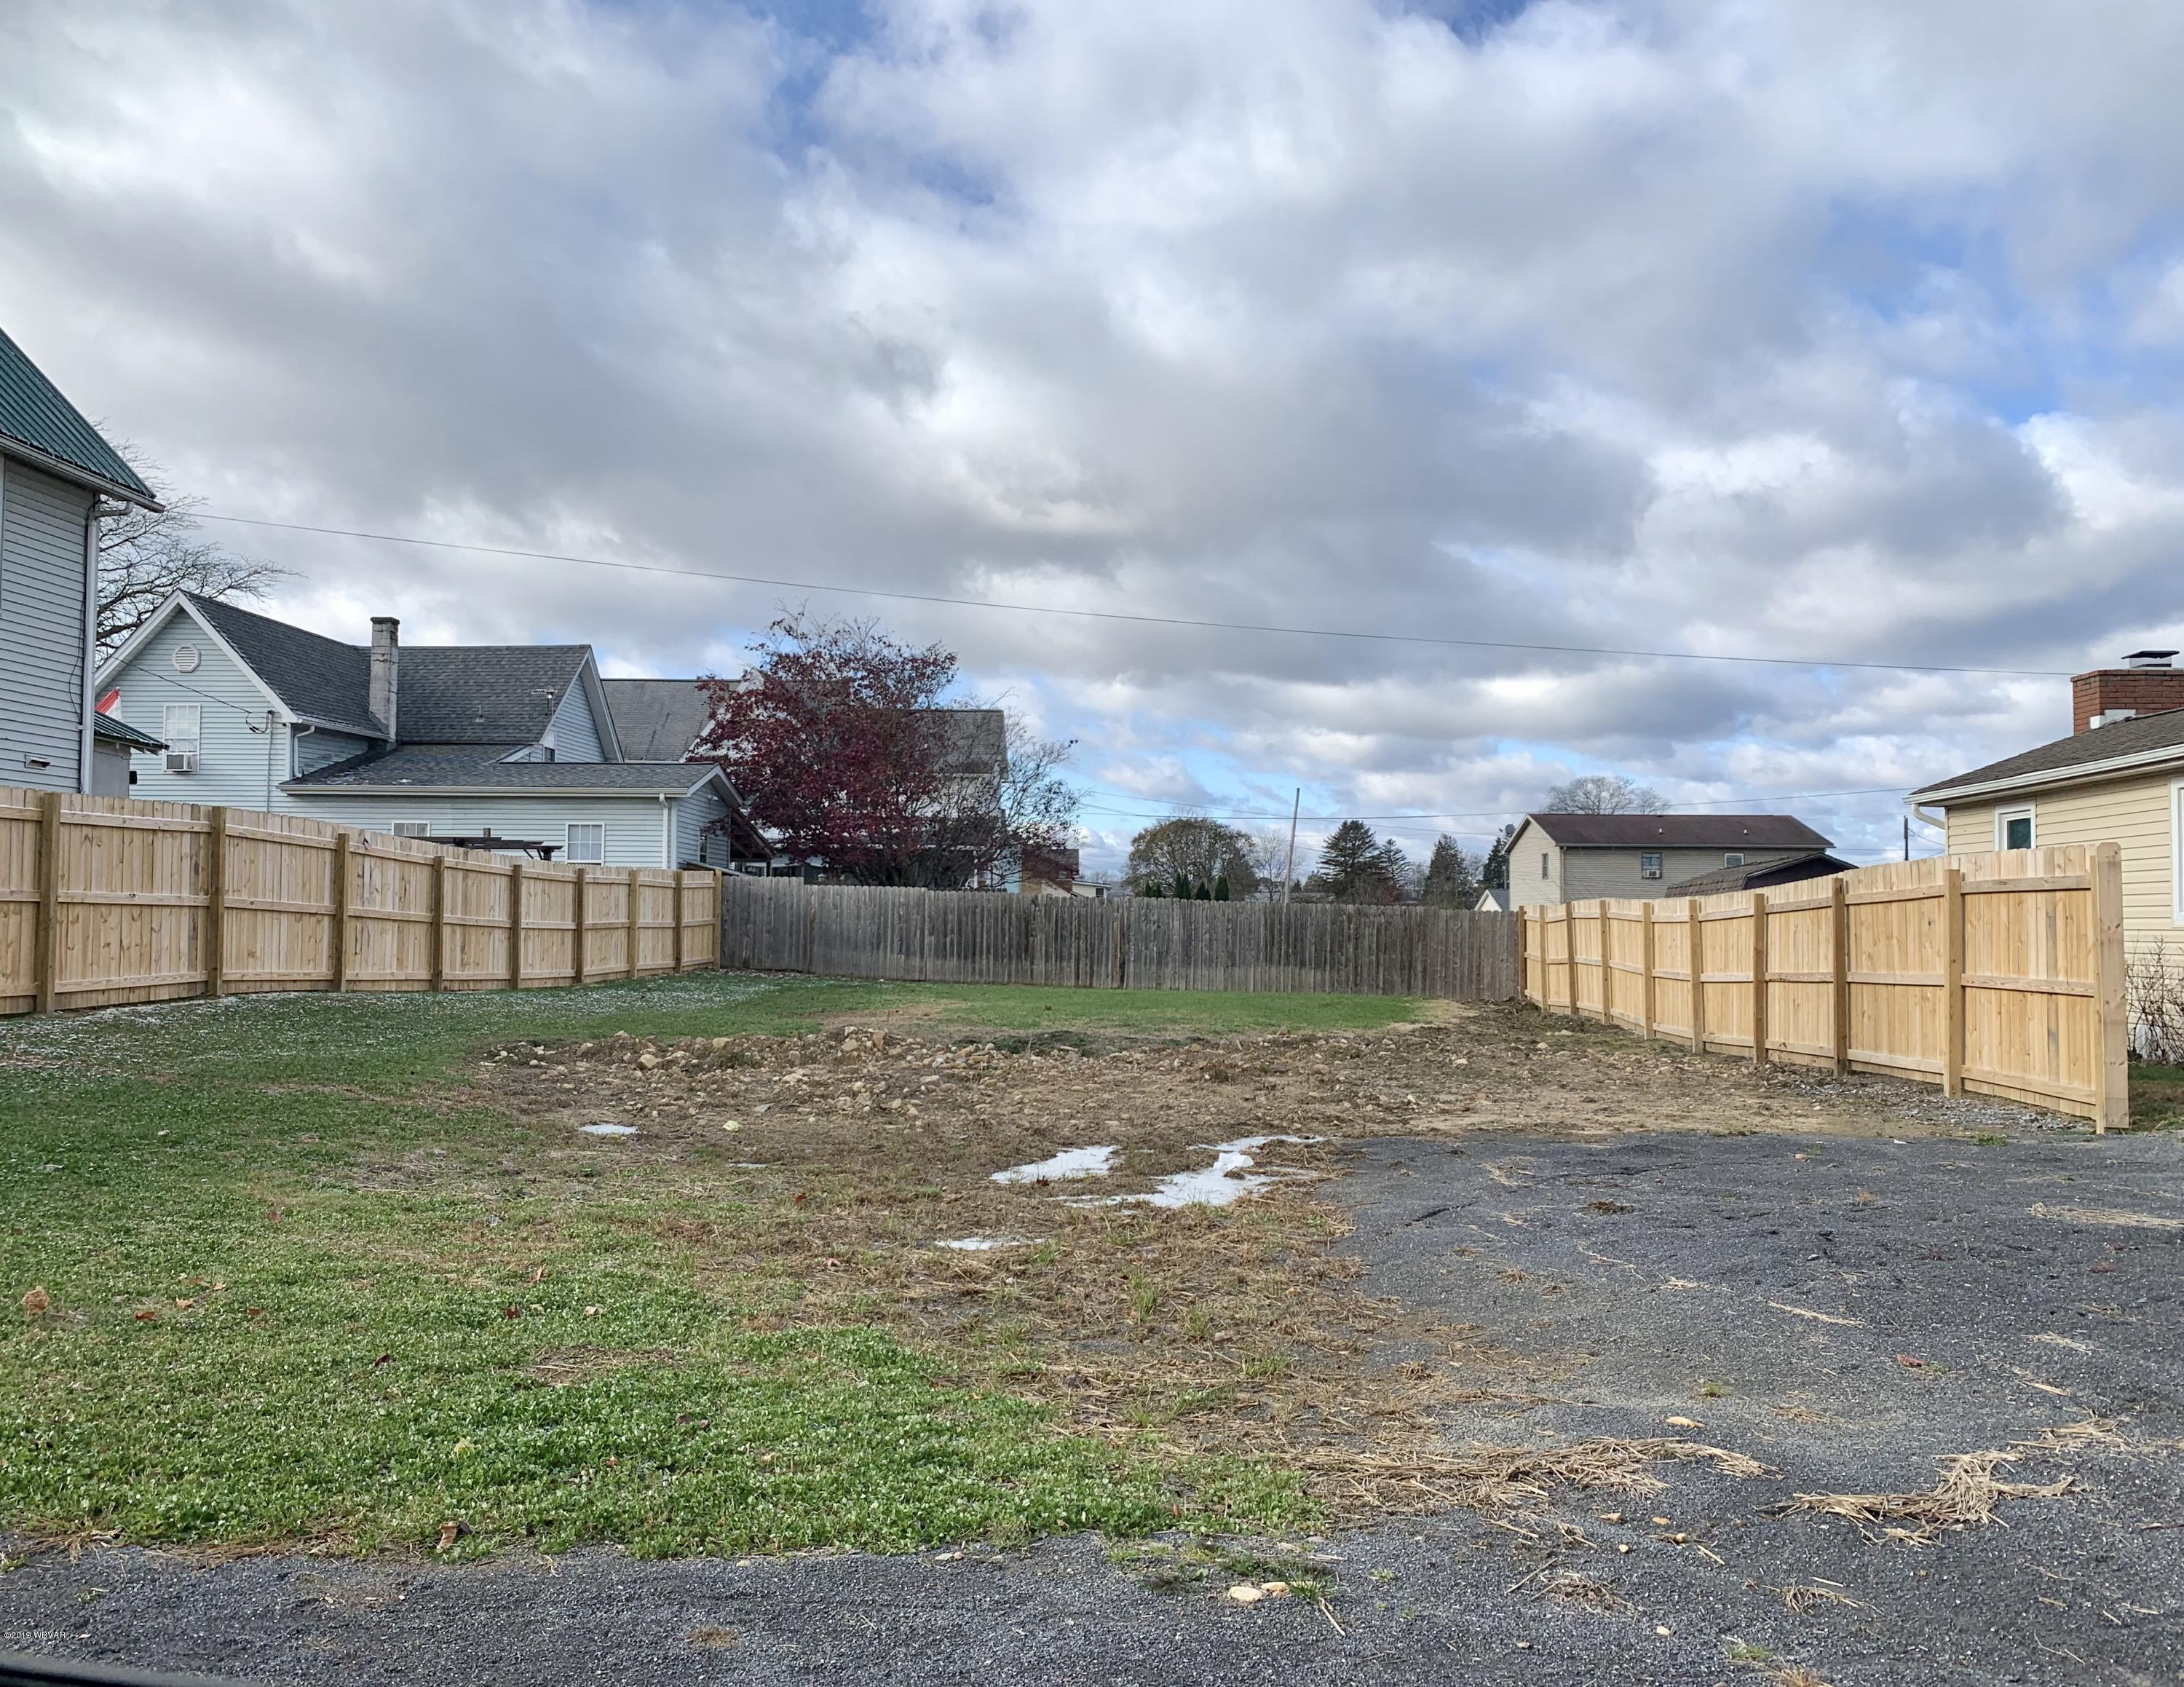 228 GLOVER STREET, Jersey Shore, PA 17740, ,Land,For sale,GLOVER,WB-89080